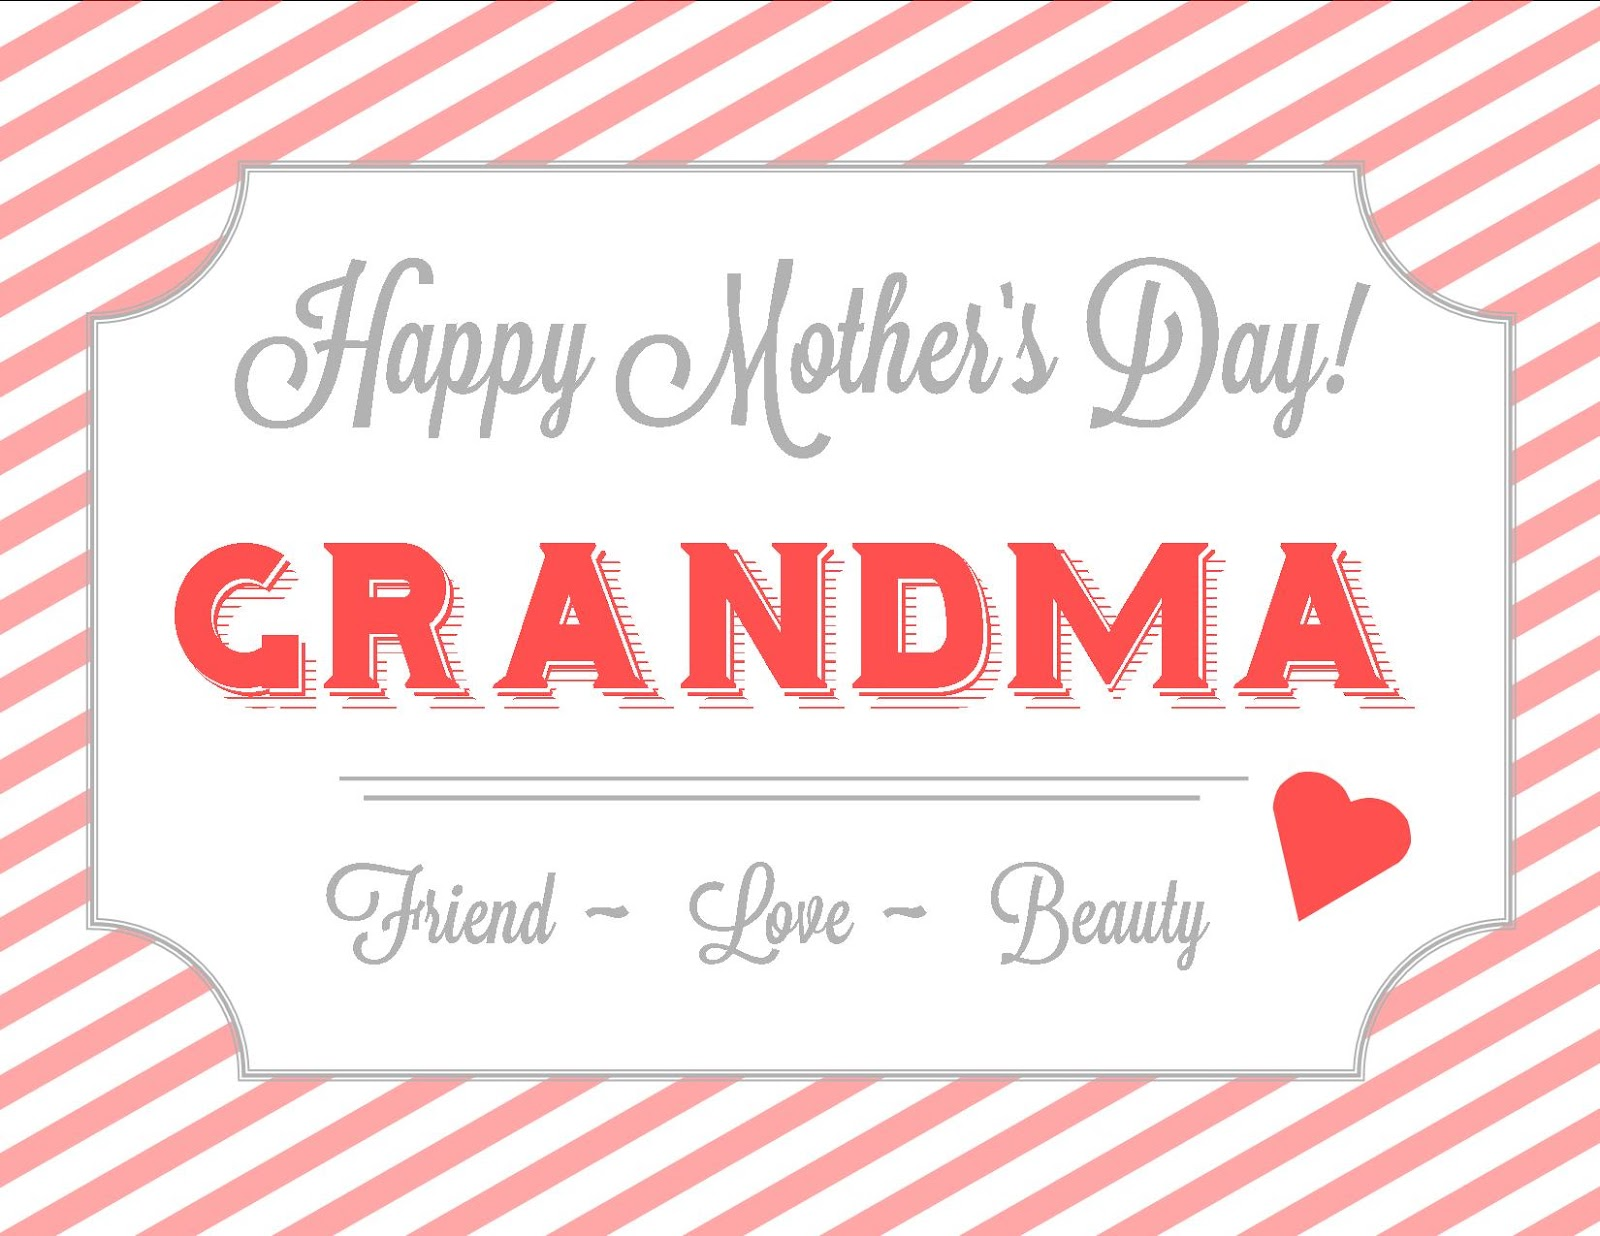 Free Printable Mothers Day Cards for GrandmaKitty Baby Love – Free Printable Mother Birthday Cards